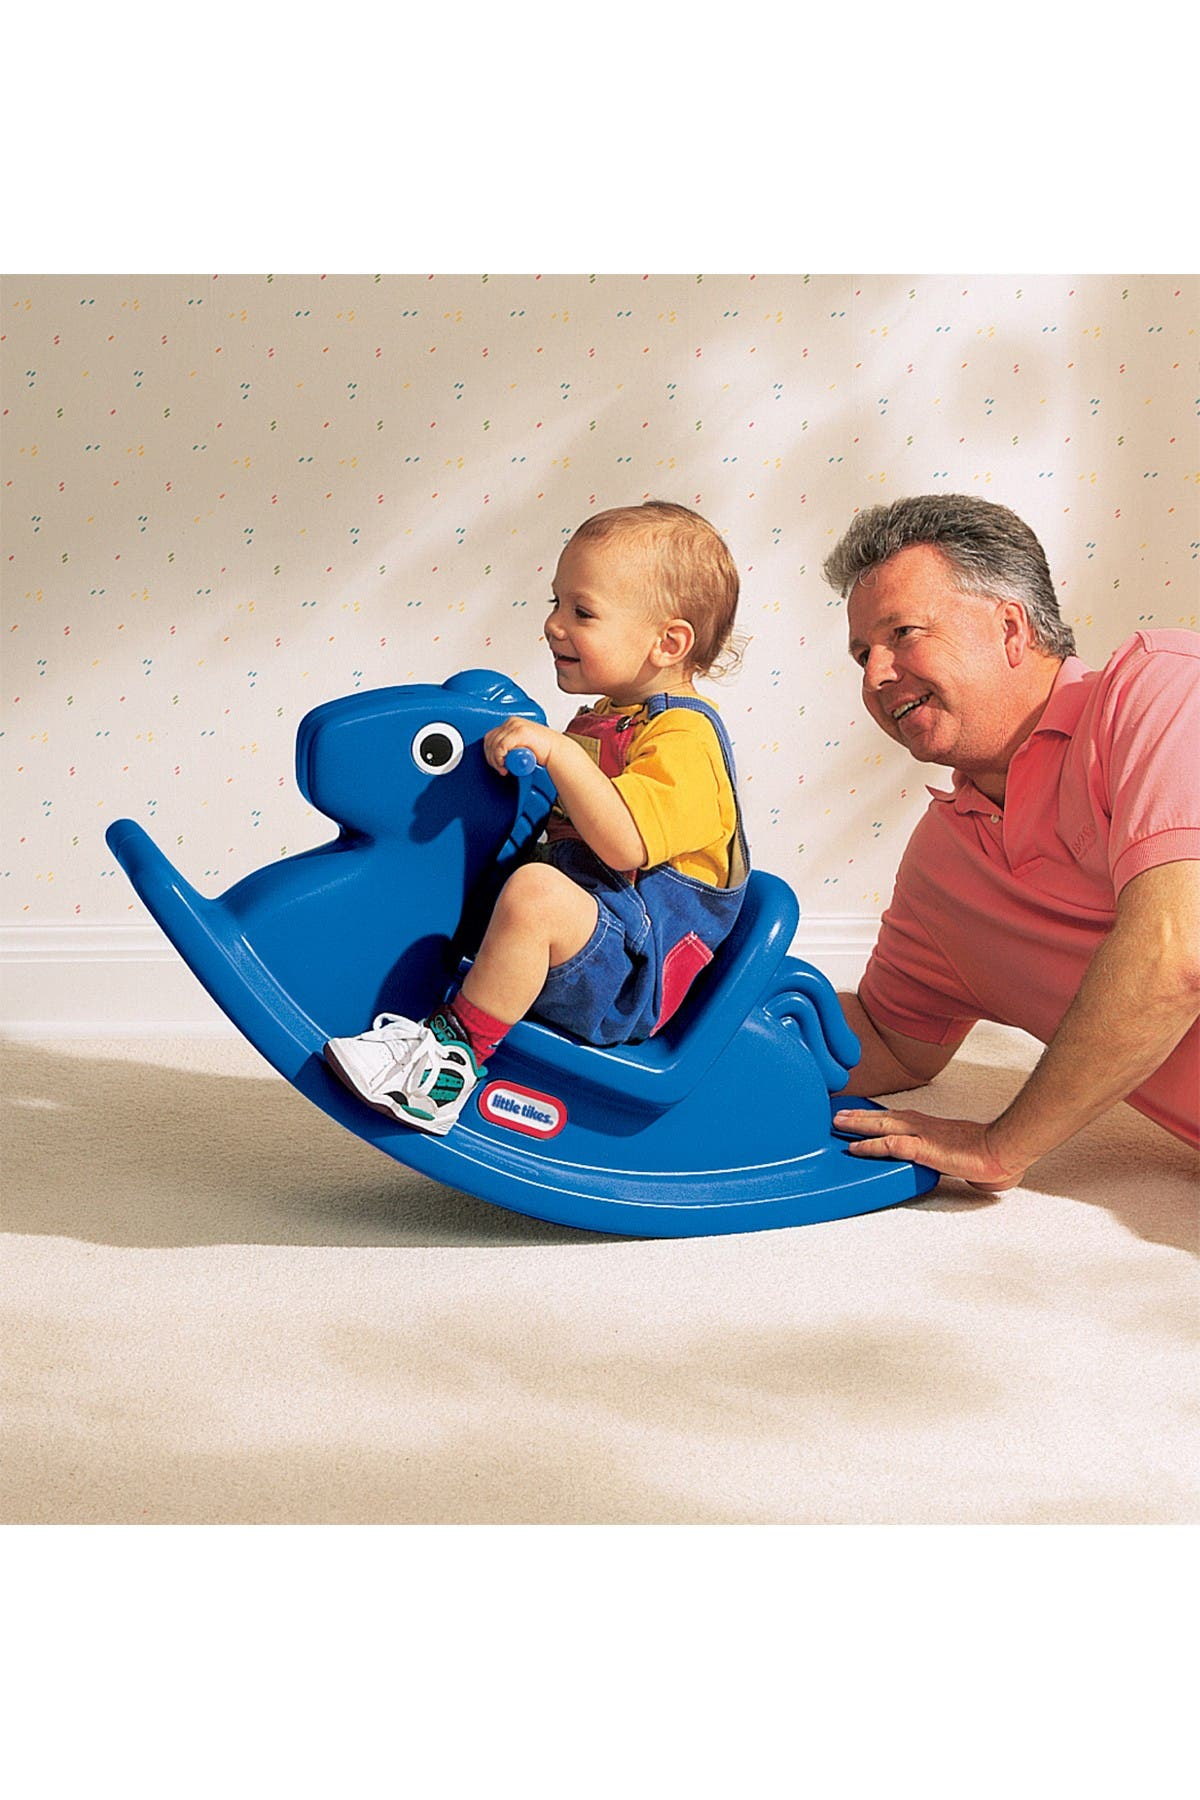 Image of Little Tikes Rocking Horse - Primary Blue